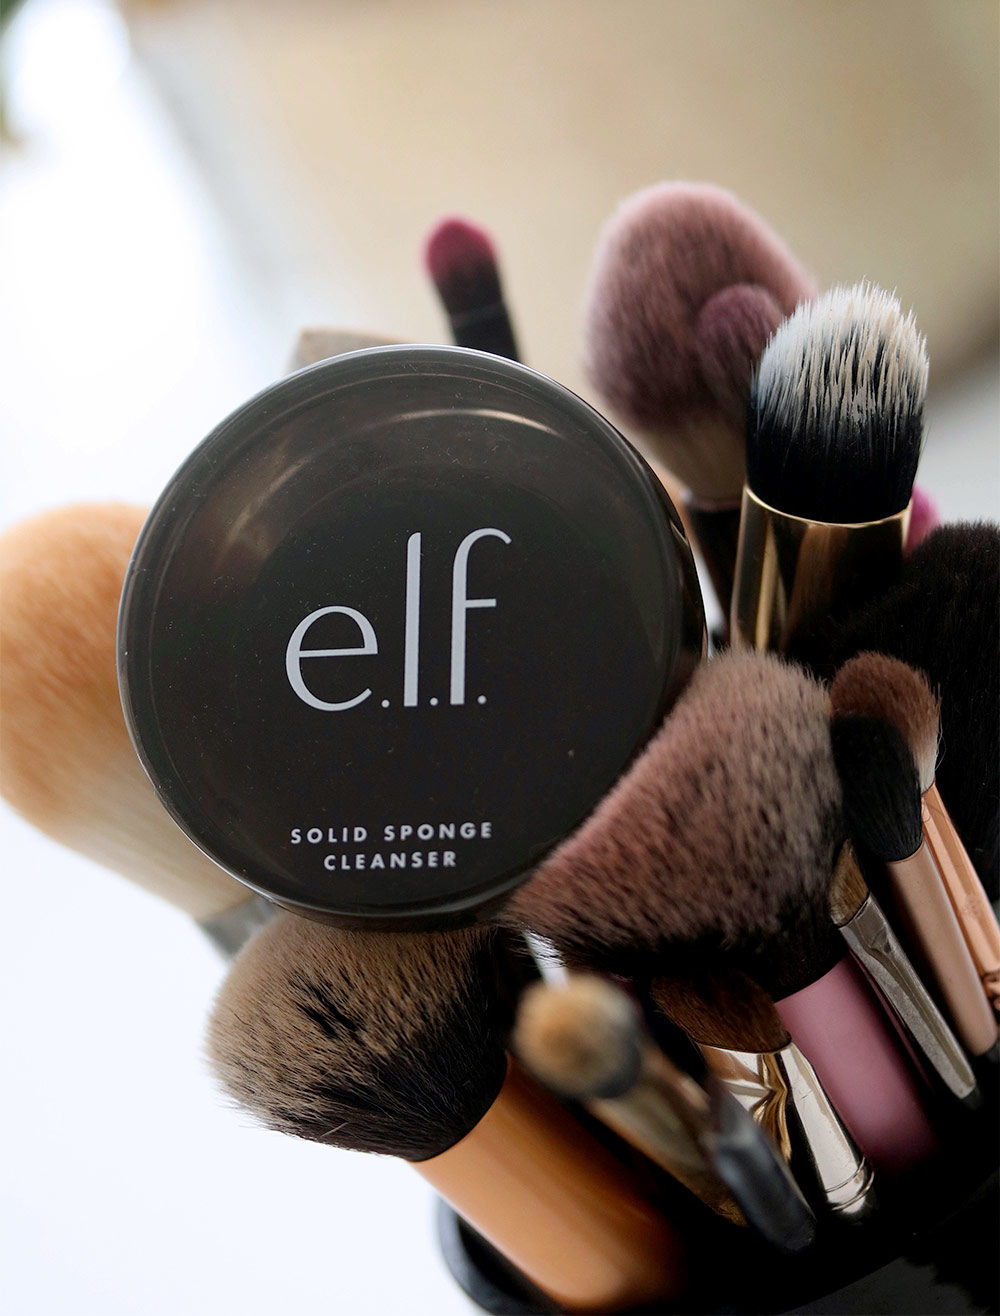 elf solid sponge cleanser